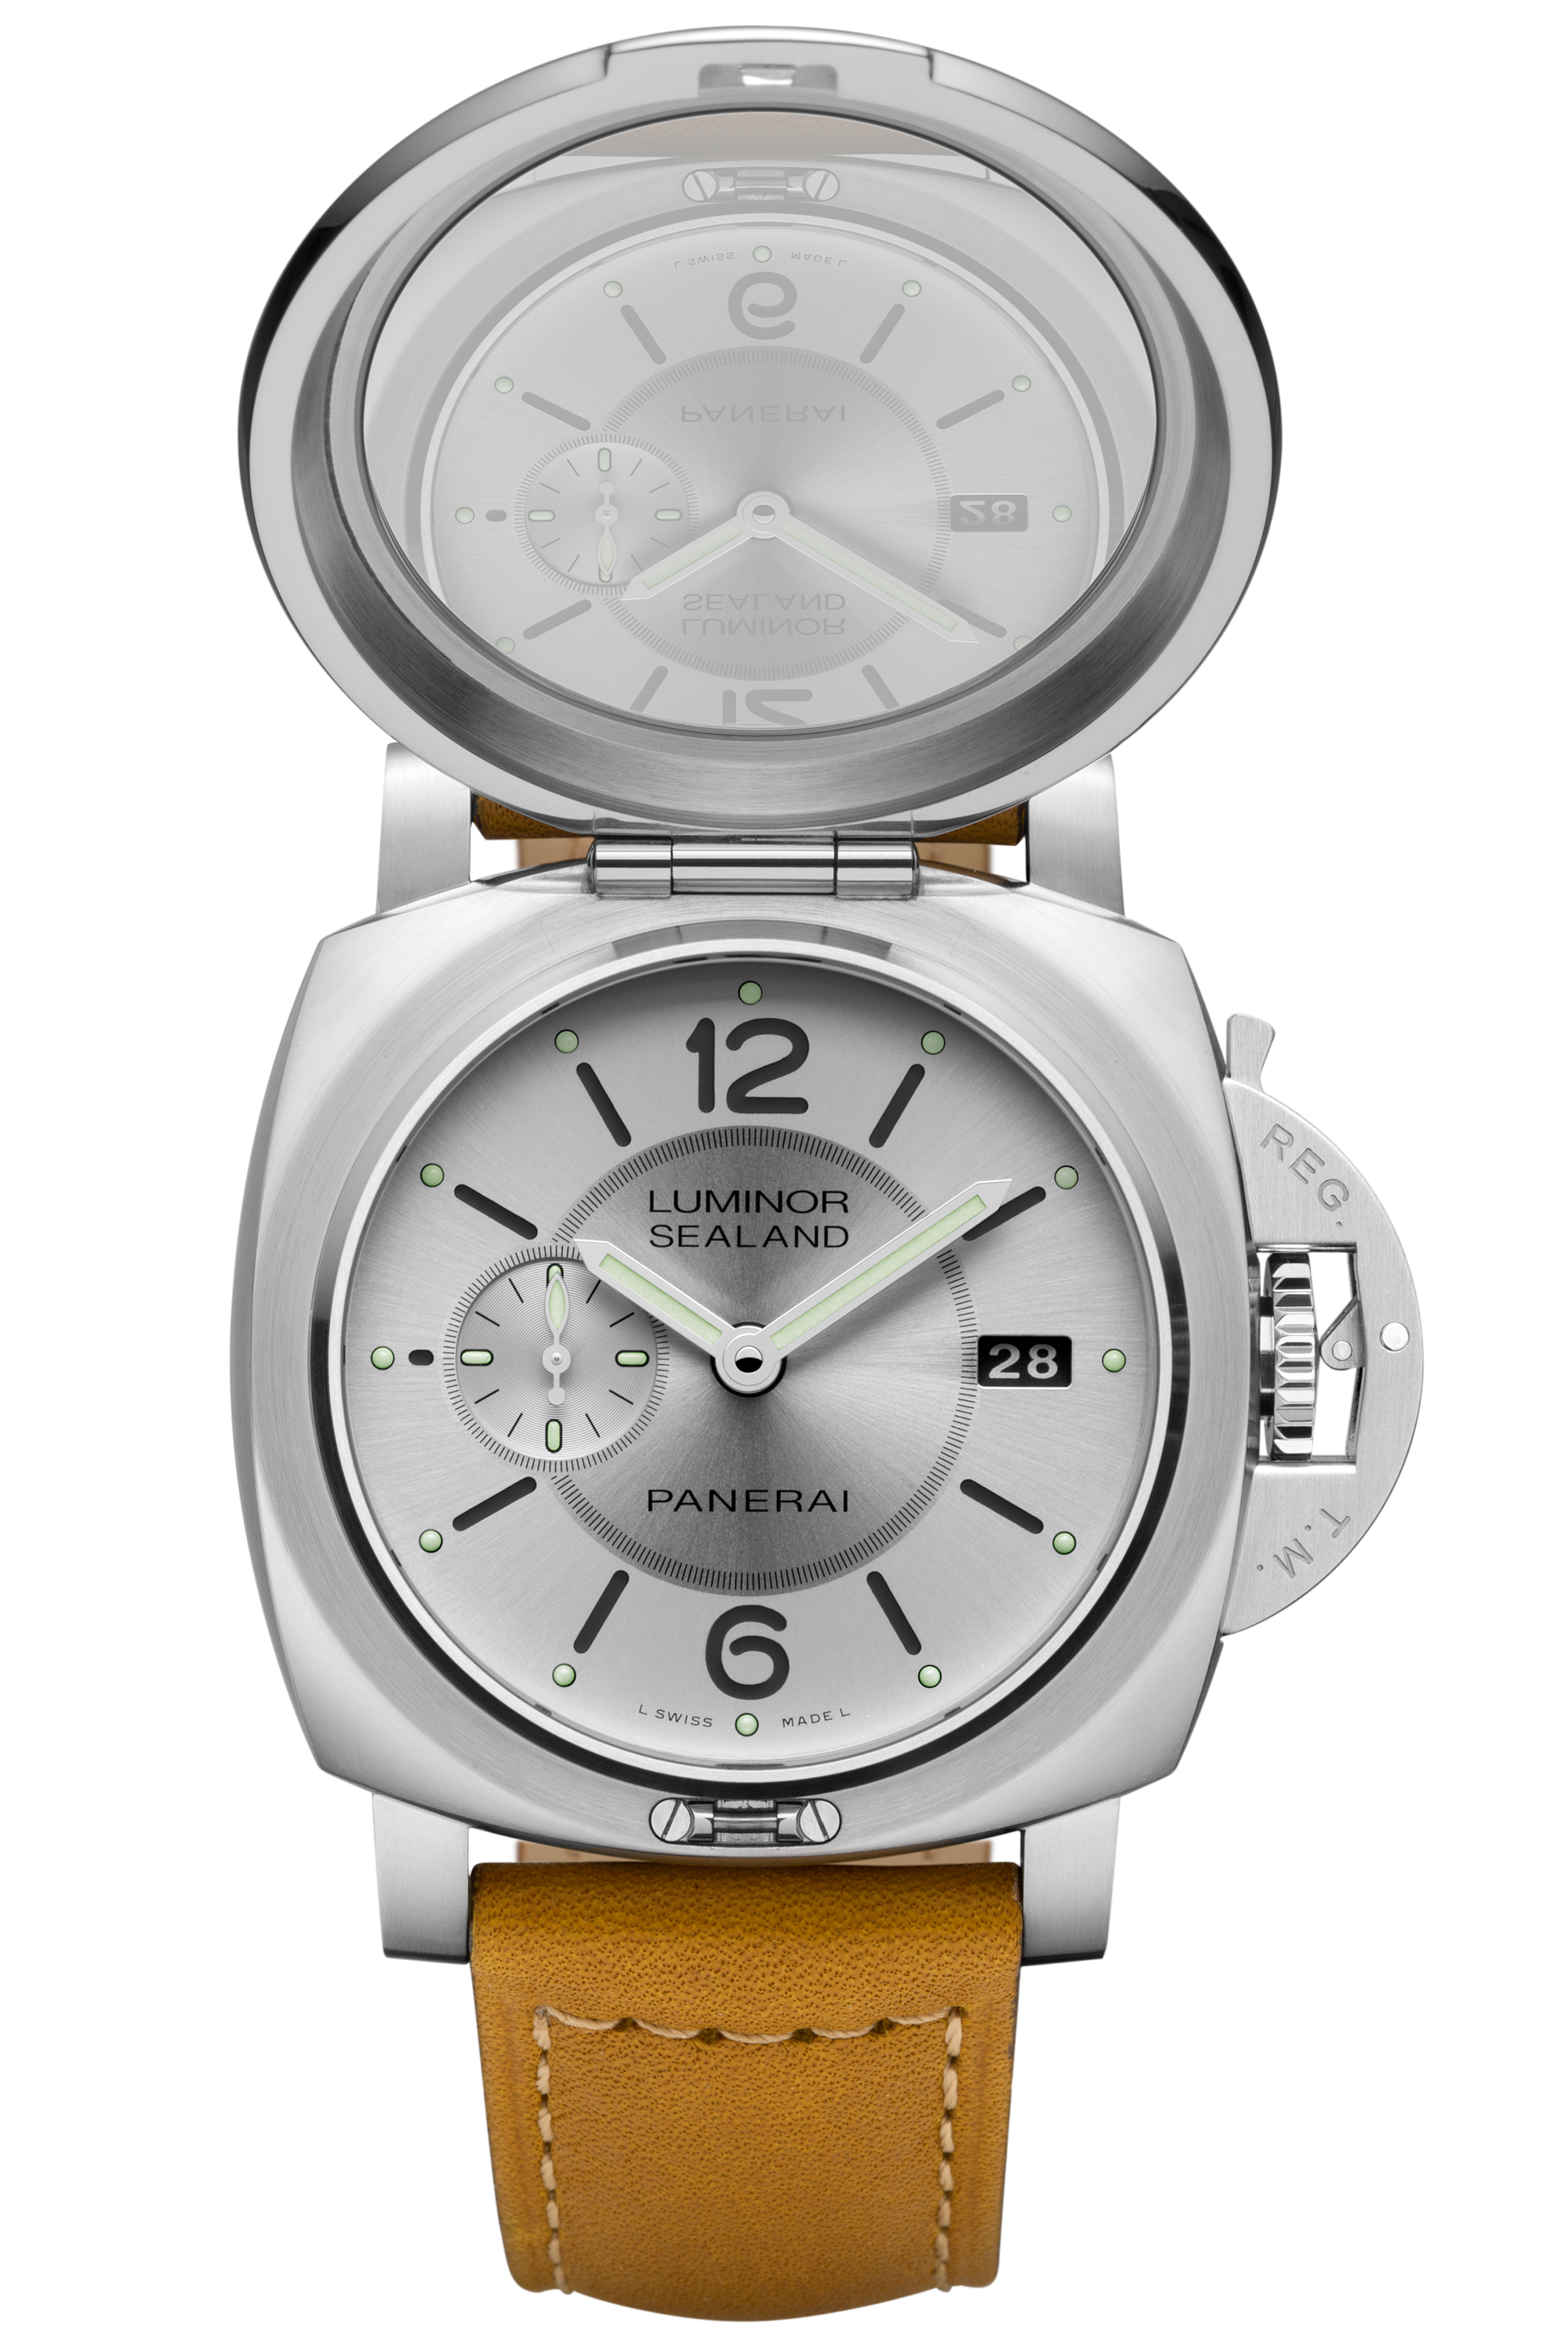 PNPAM00852 - Luminor 1950 Sealand 3 Days Automatic Acciaio - 44mm腕錶